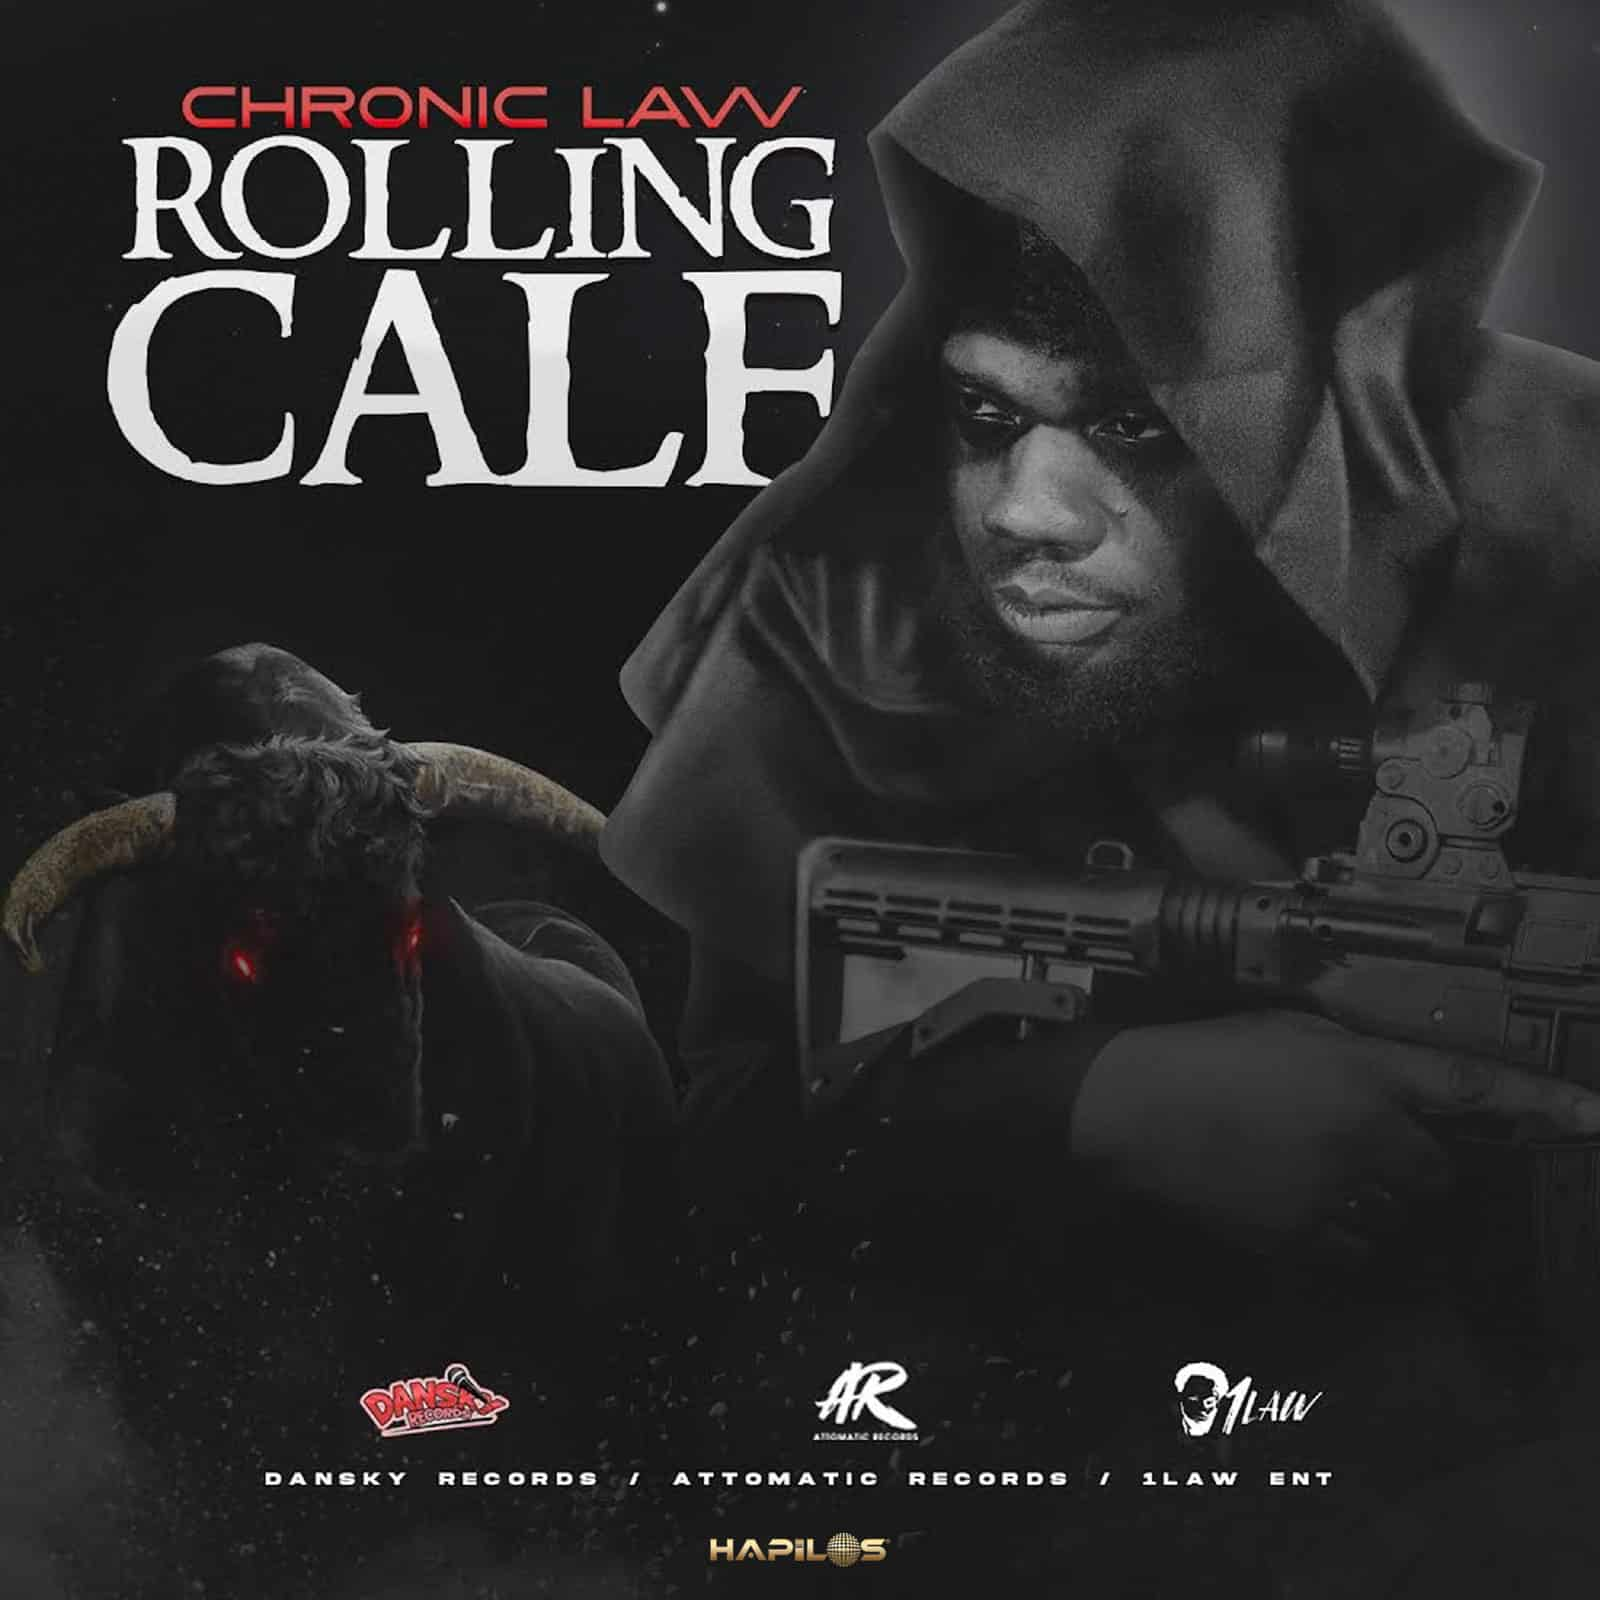 Chronic Law - Rolling Calf - Dan Sky Records / Attomatic Records / 1Law Entertainment